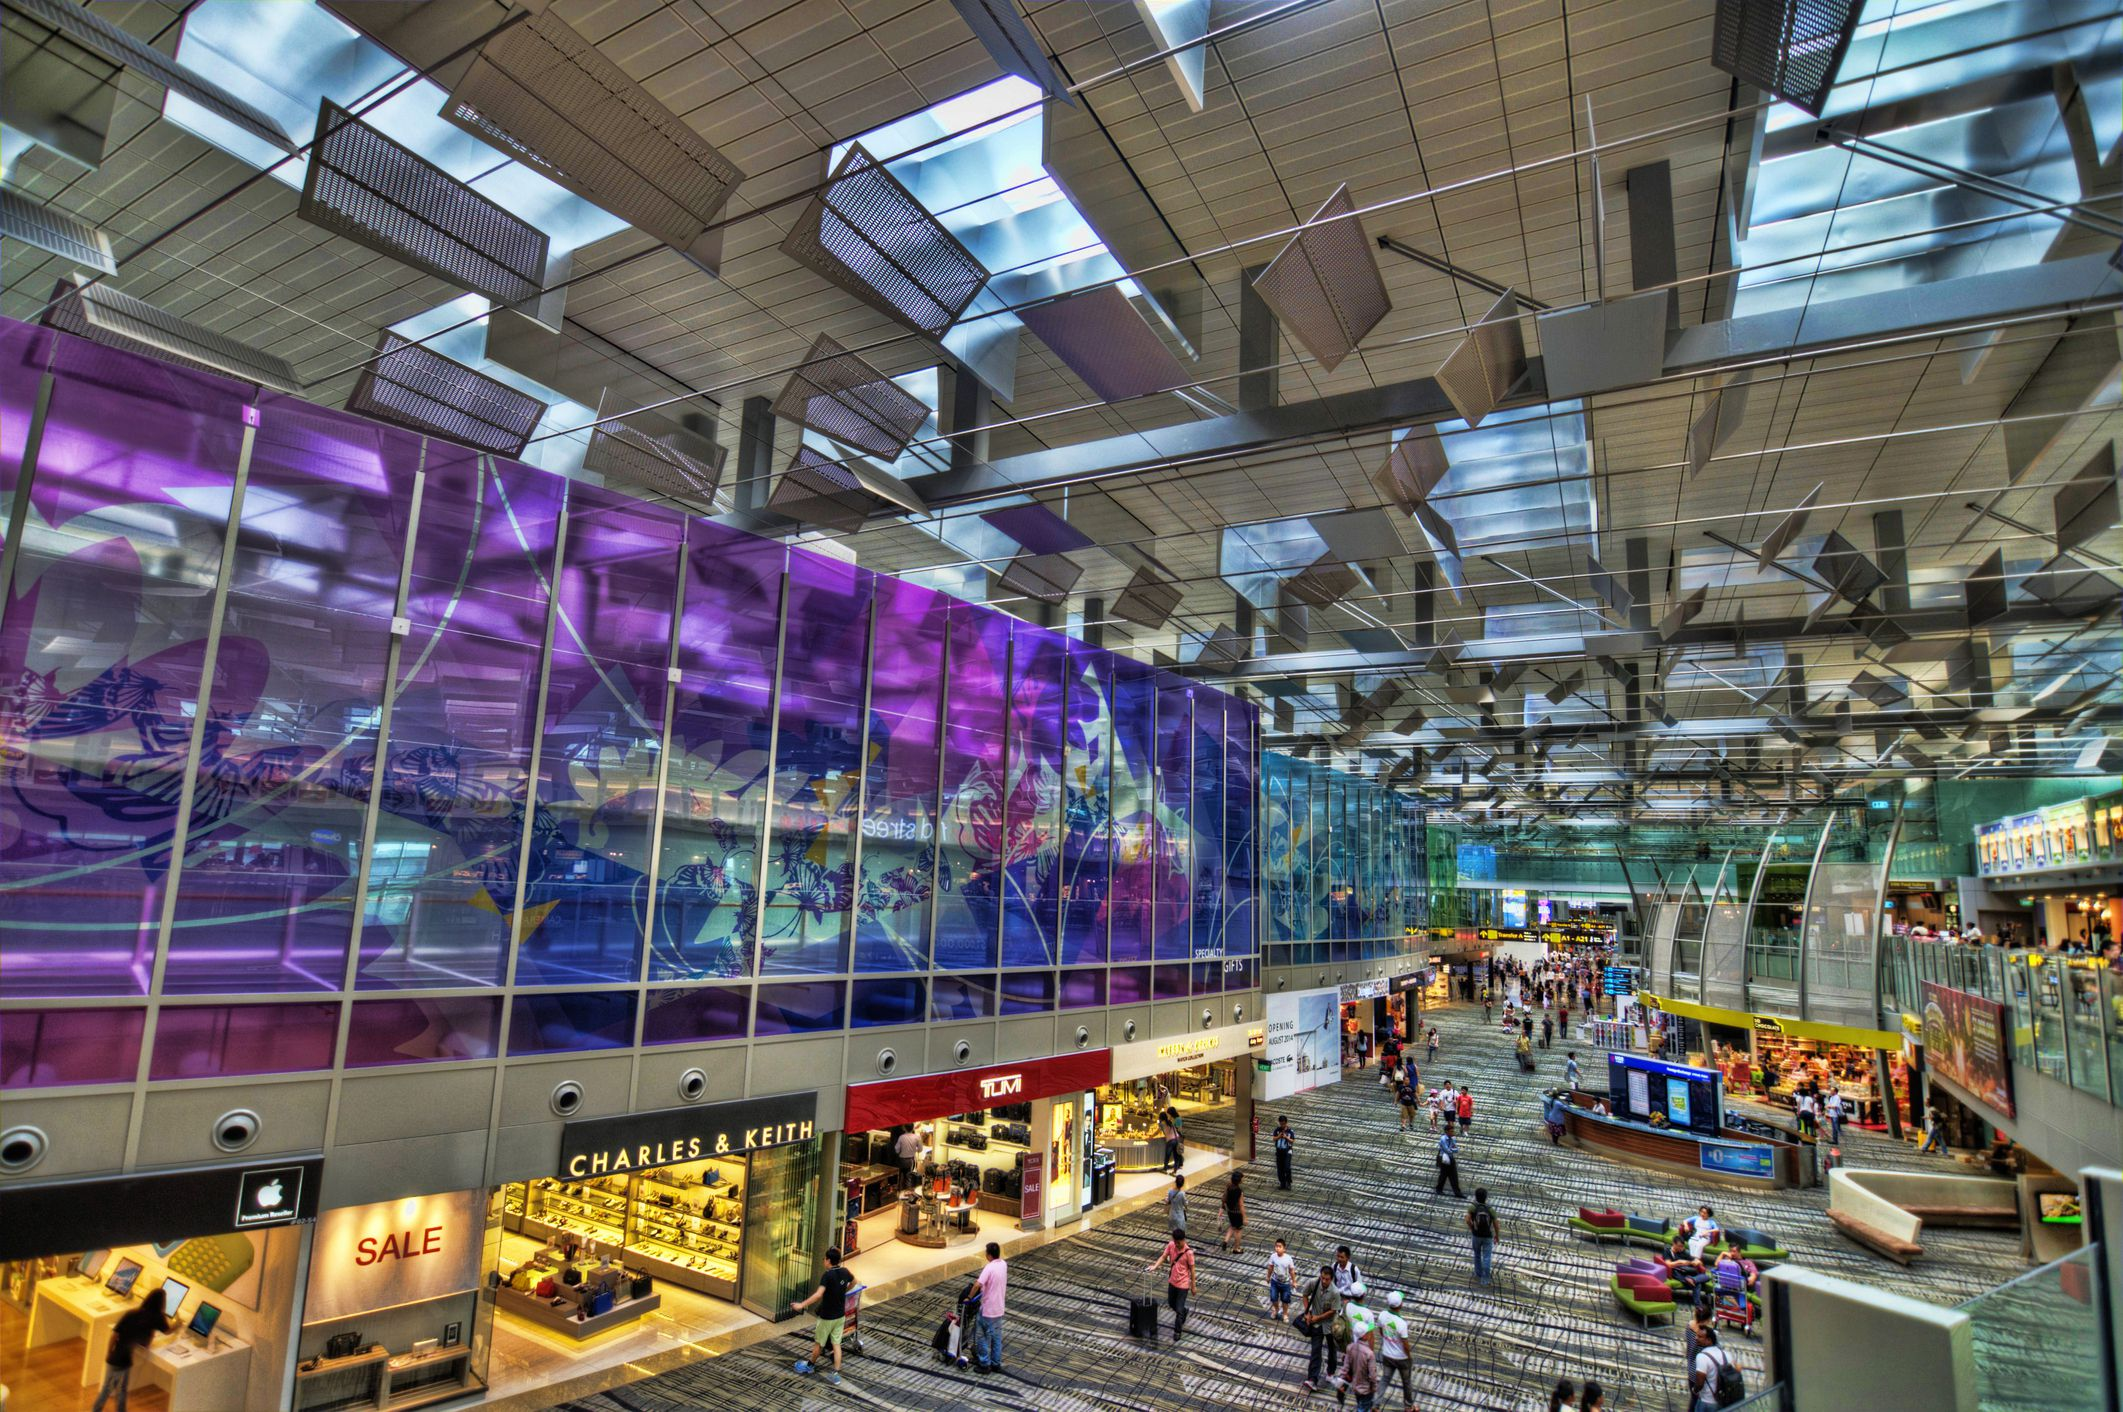 How To Spend Your Layover In Changi Airport Singapore